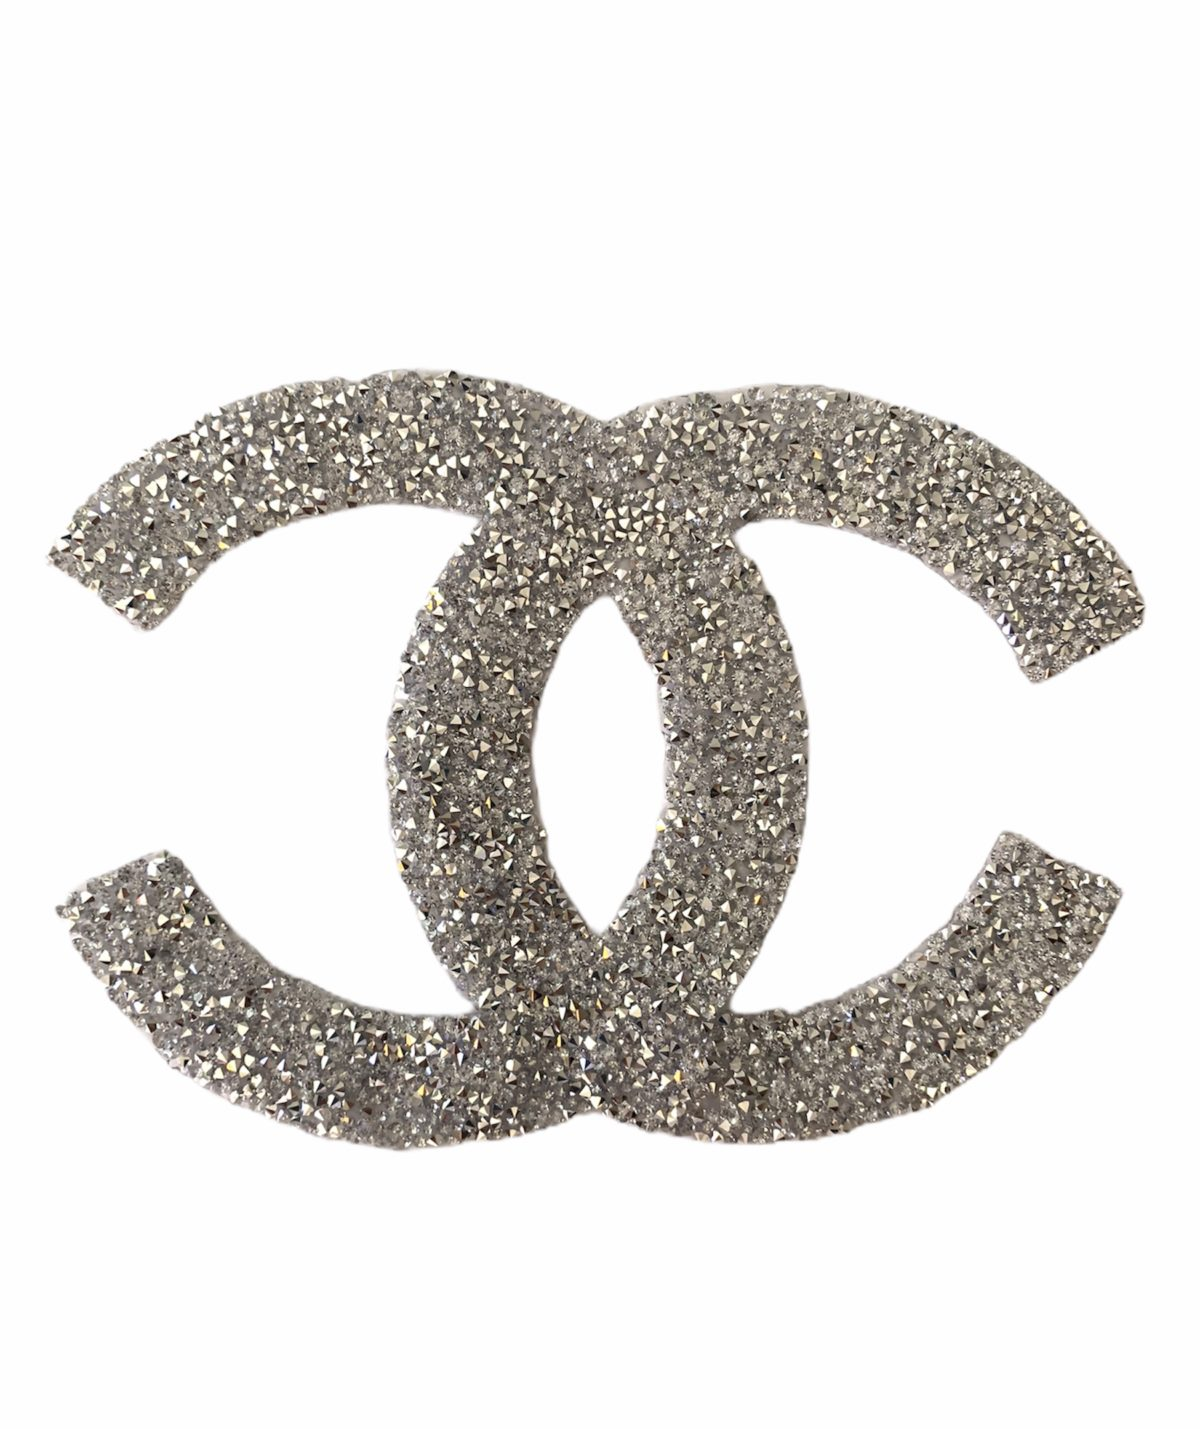 New CC Hotfix Patch, Iron On, Rhinestone Chanel, Large Design 1